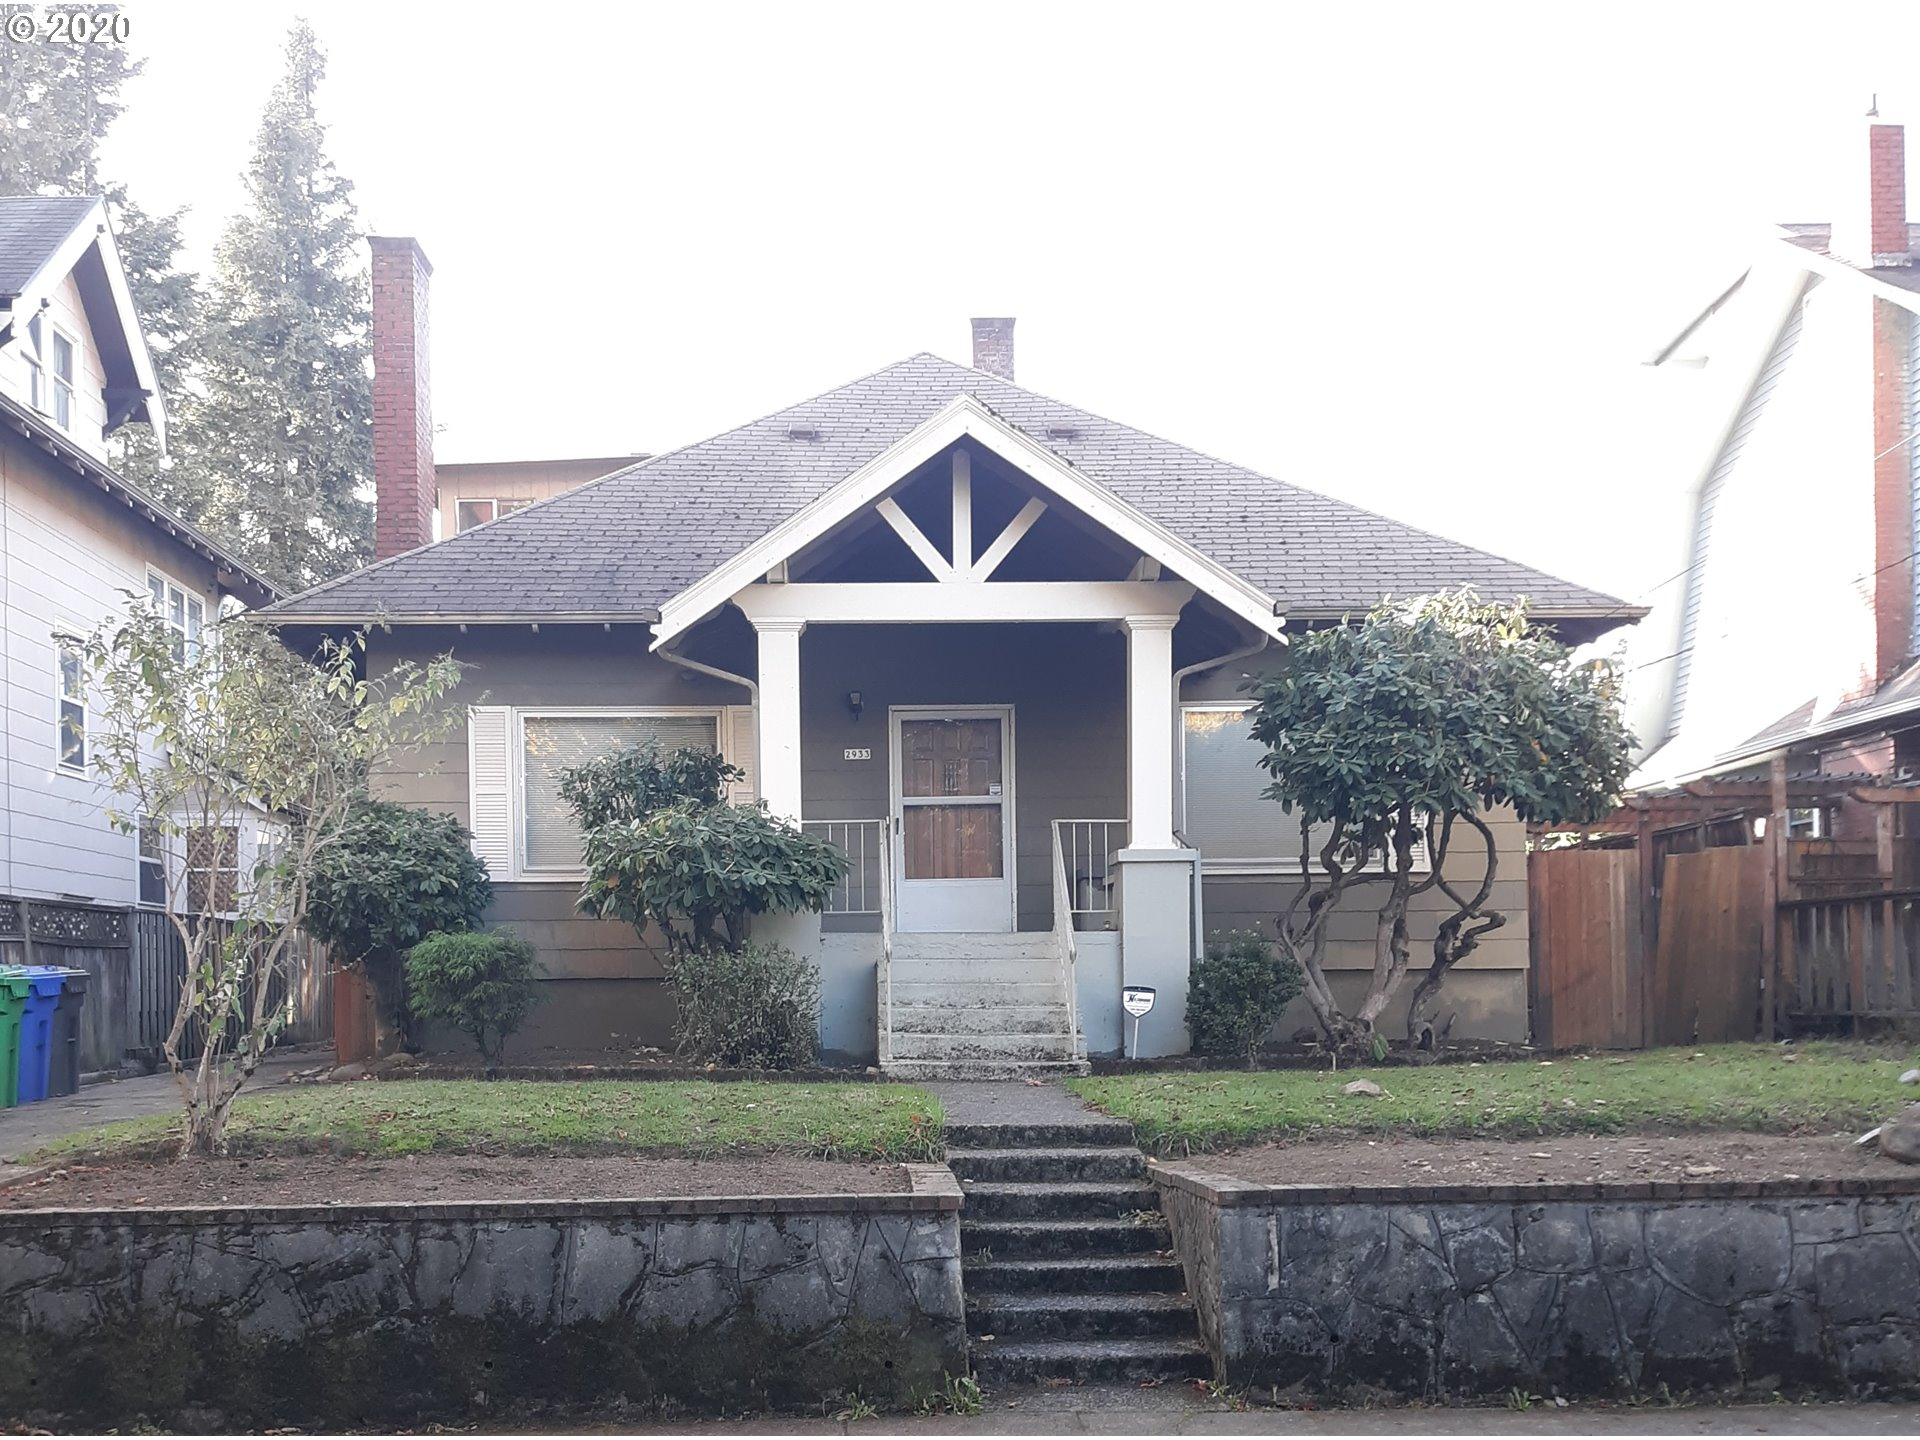 Charming three bedroom bungalow with basement nestled in Irvington available and ready to become your dream home. [Home Energy Score = 1. HES Report at https://rpt.greenbuildingregistry.com/hes/OR10187775]